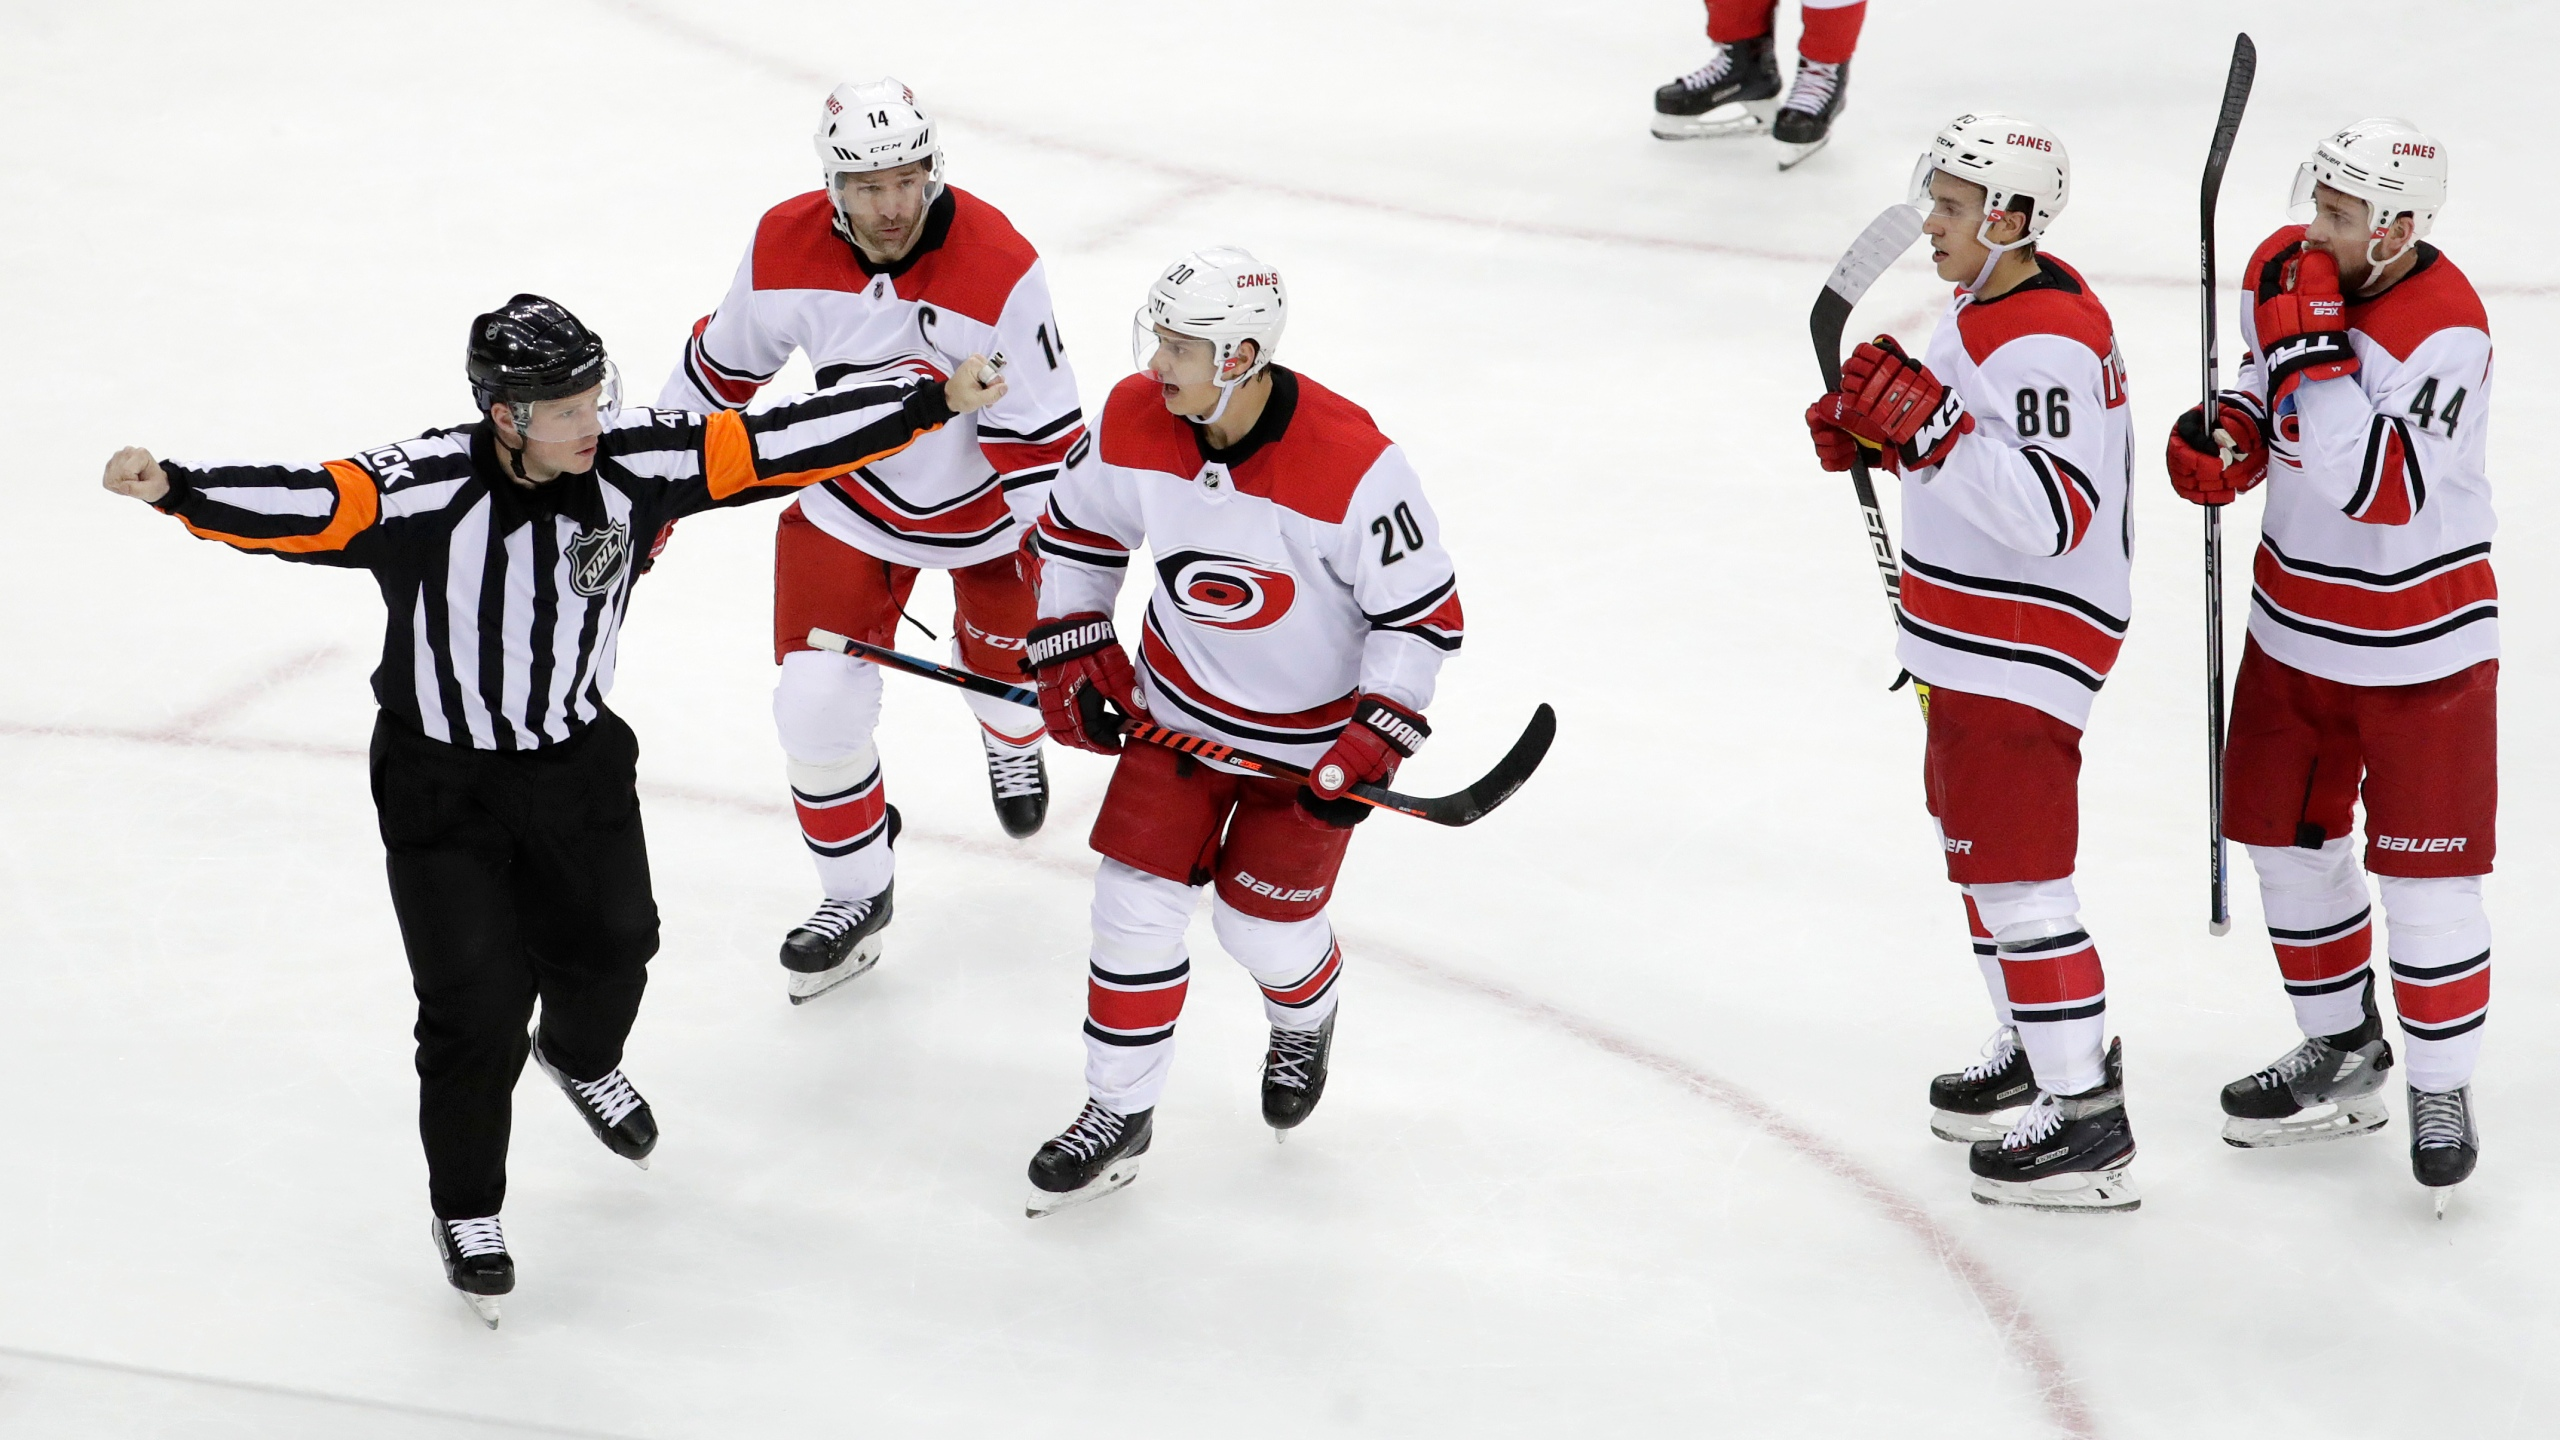 Hurricanes_Devils_Hockey_00376-159532.jpg30325902